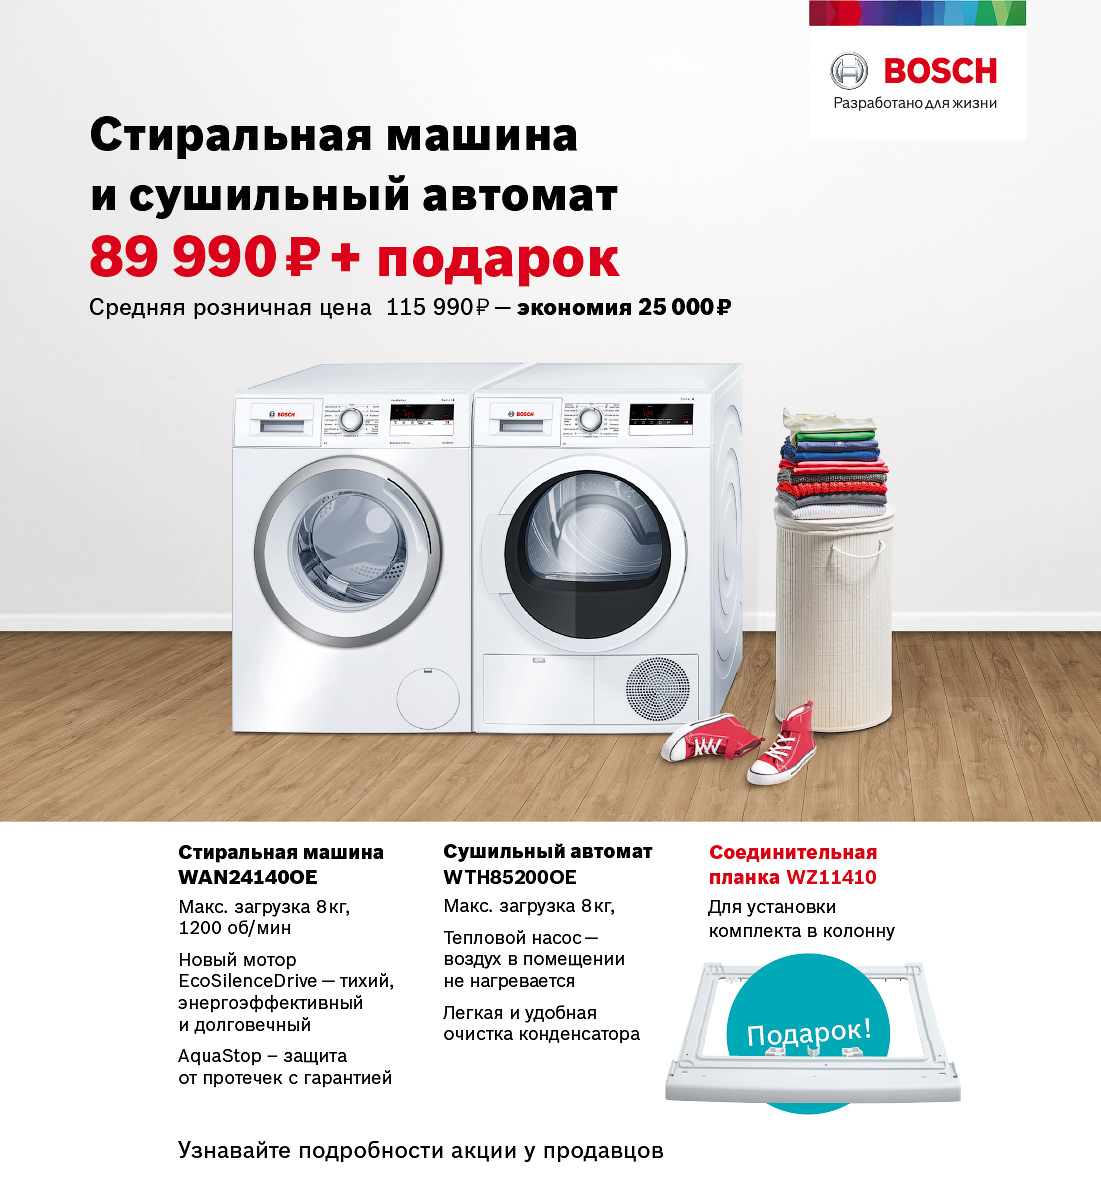 561_2016_bosch_action_wash_dry_web_ulmart_240x400